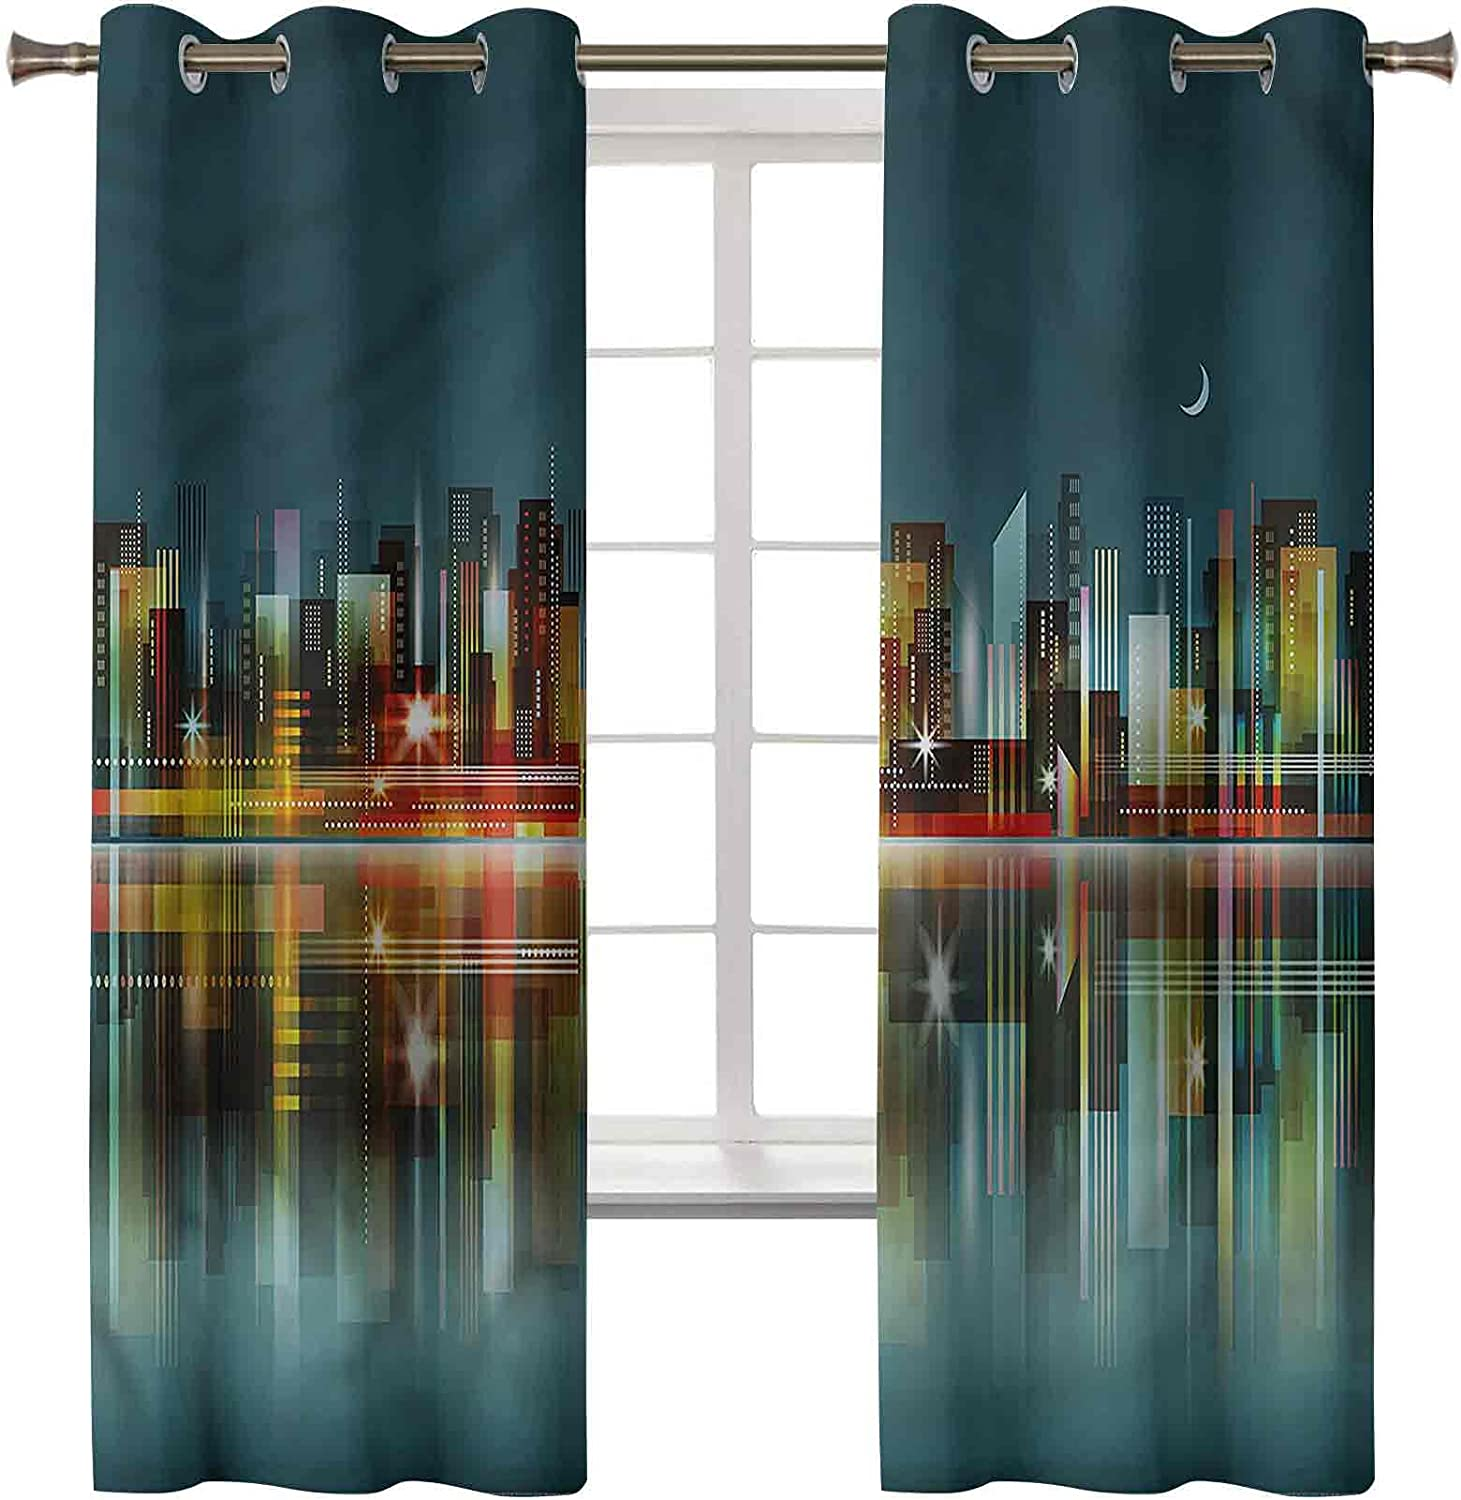 Modern Curtains Drapes Set of 2 Panels Inch 84 New Selling and selling sales 42 Cu Luxury x